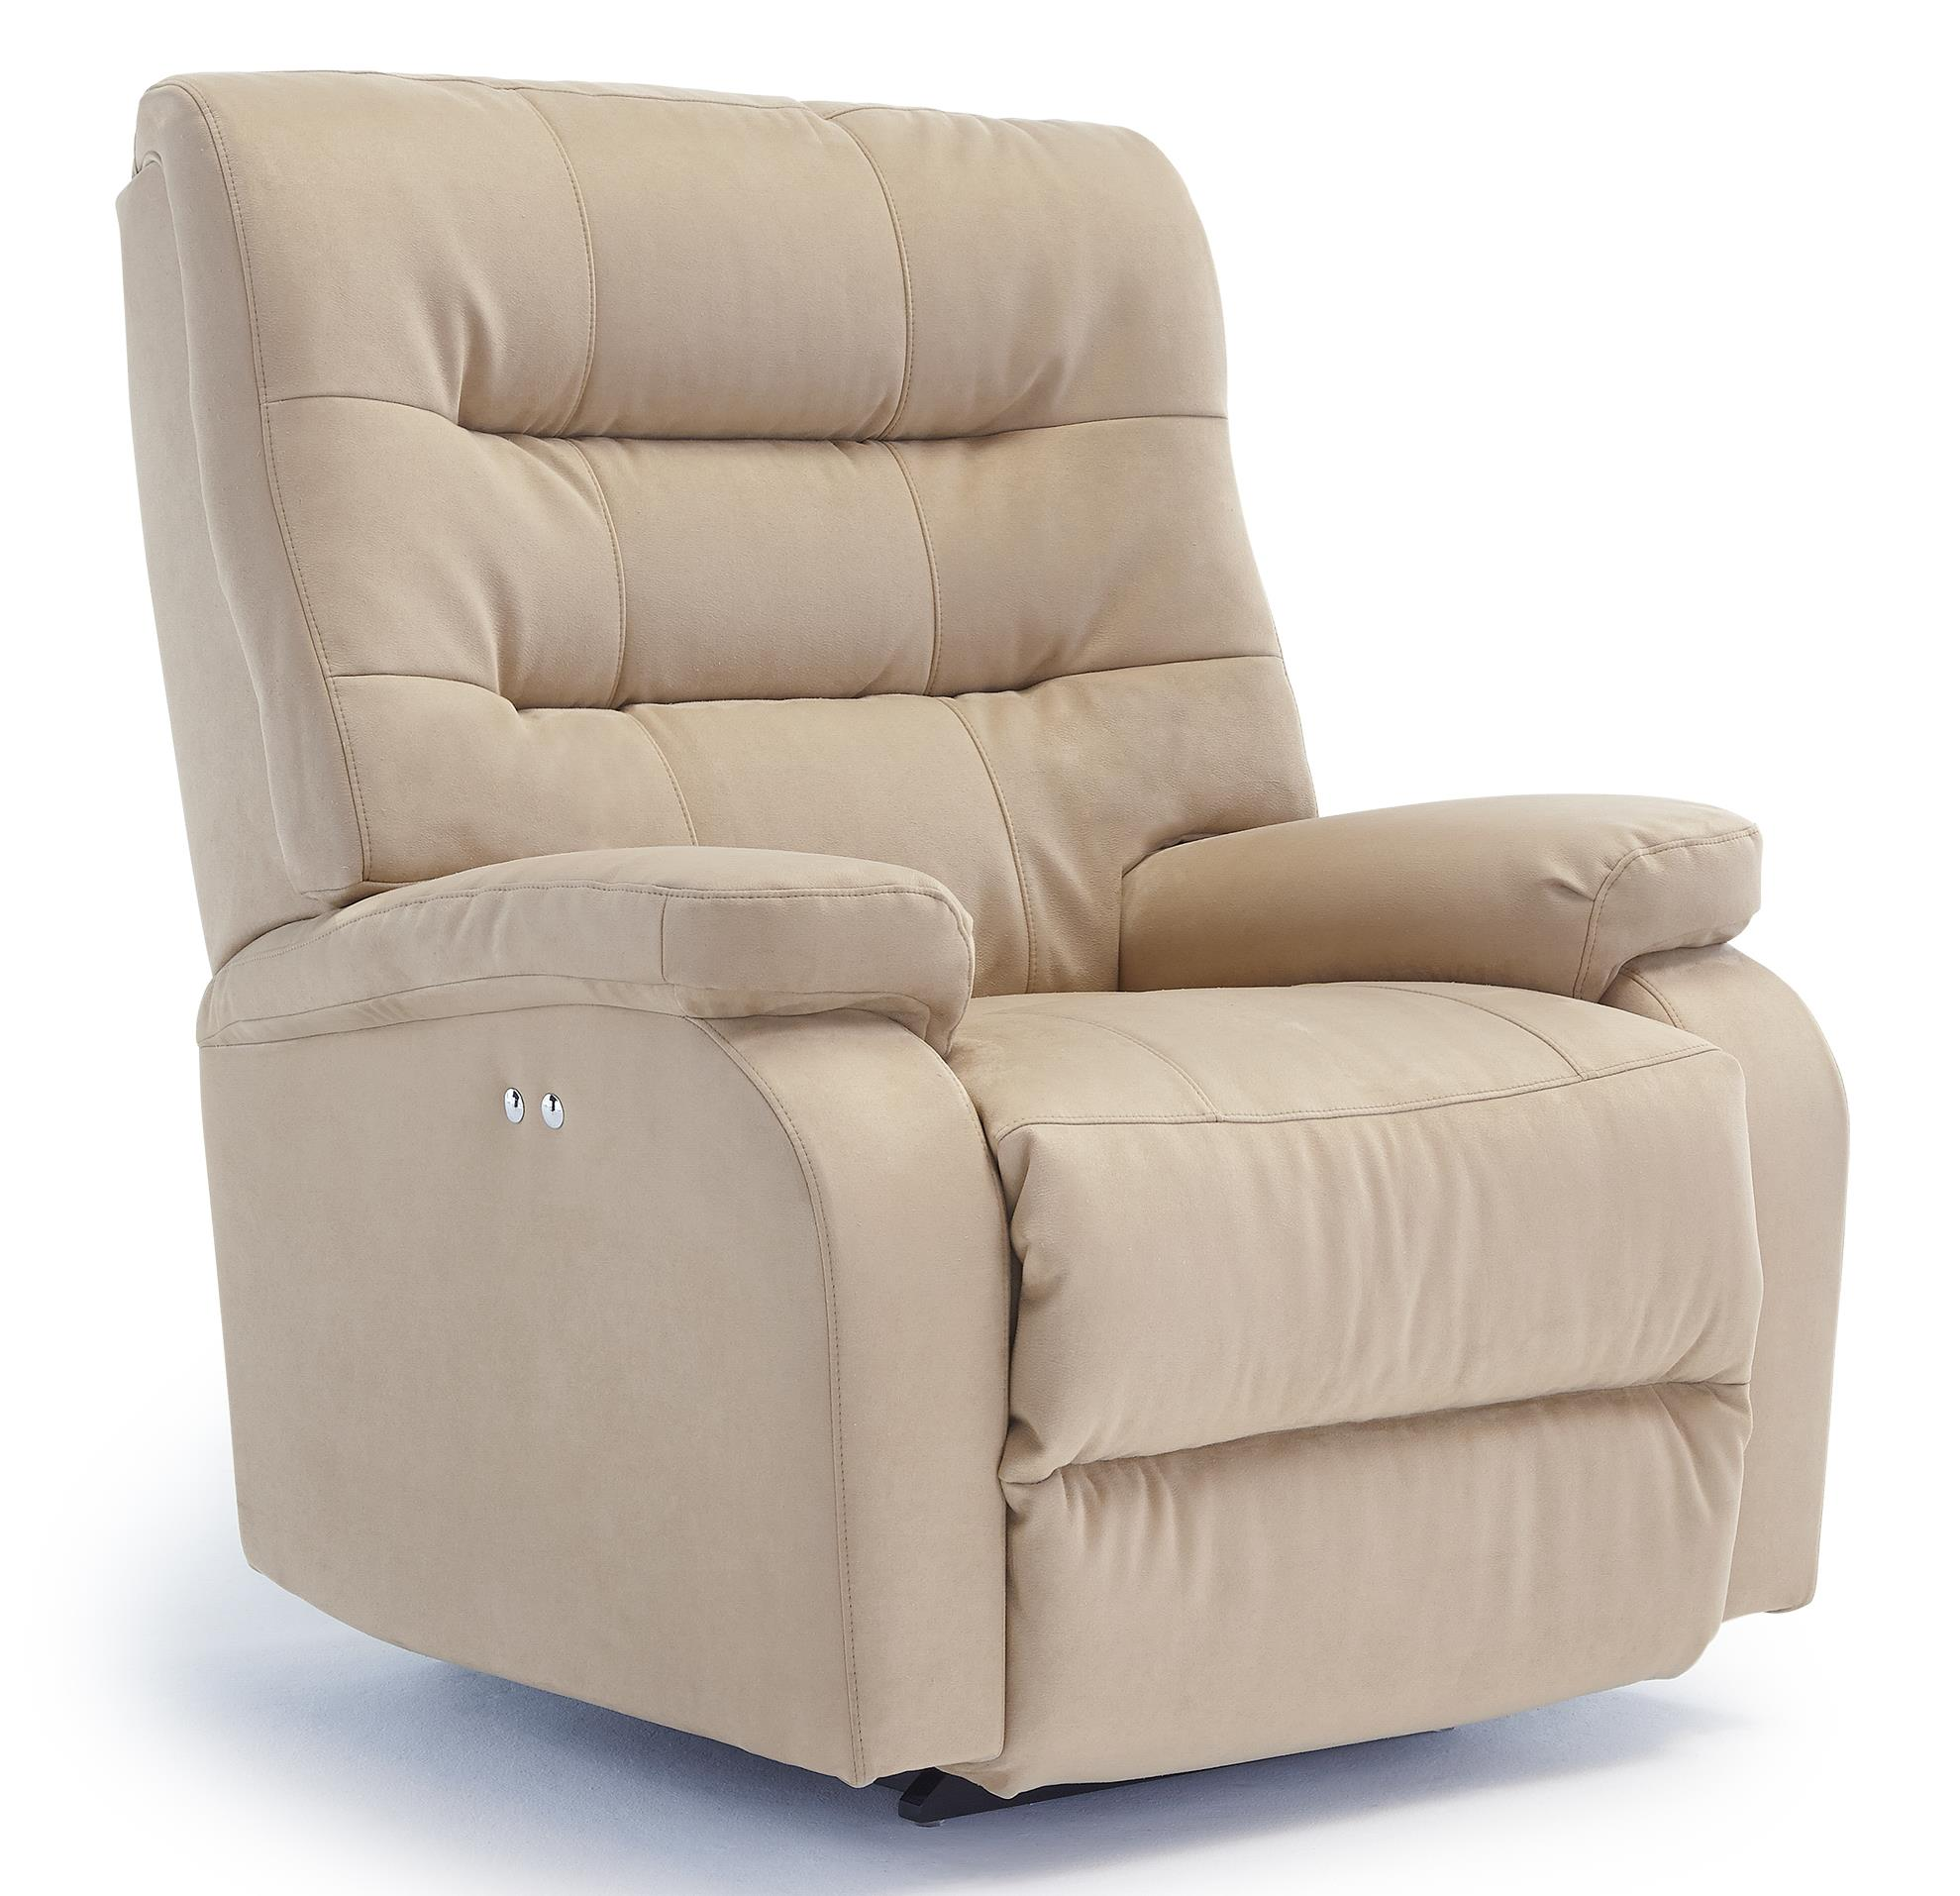 Best Home Furnishings Recliners - Medium Liam Rocker Recliner - Item Number: 8N37-26659